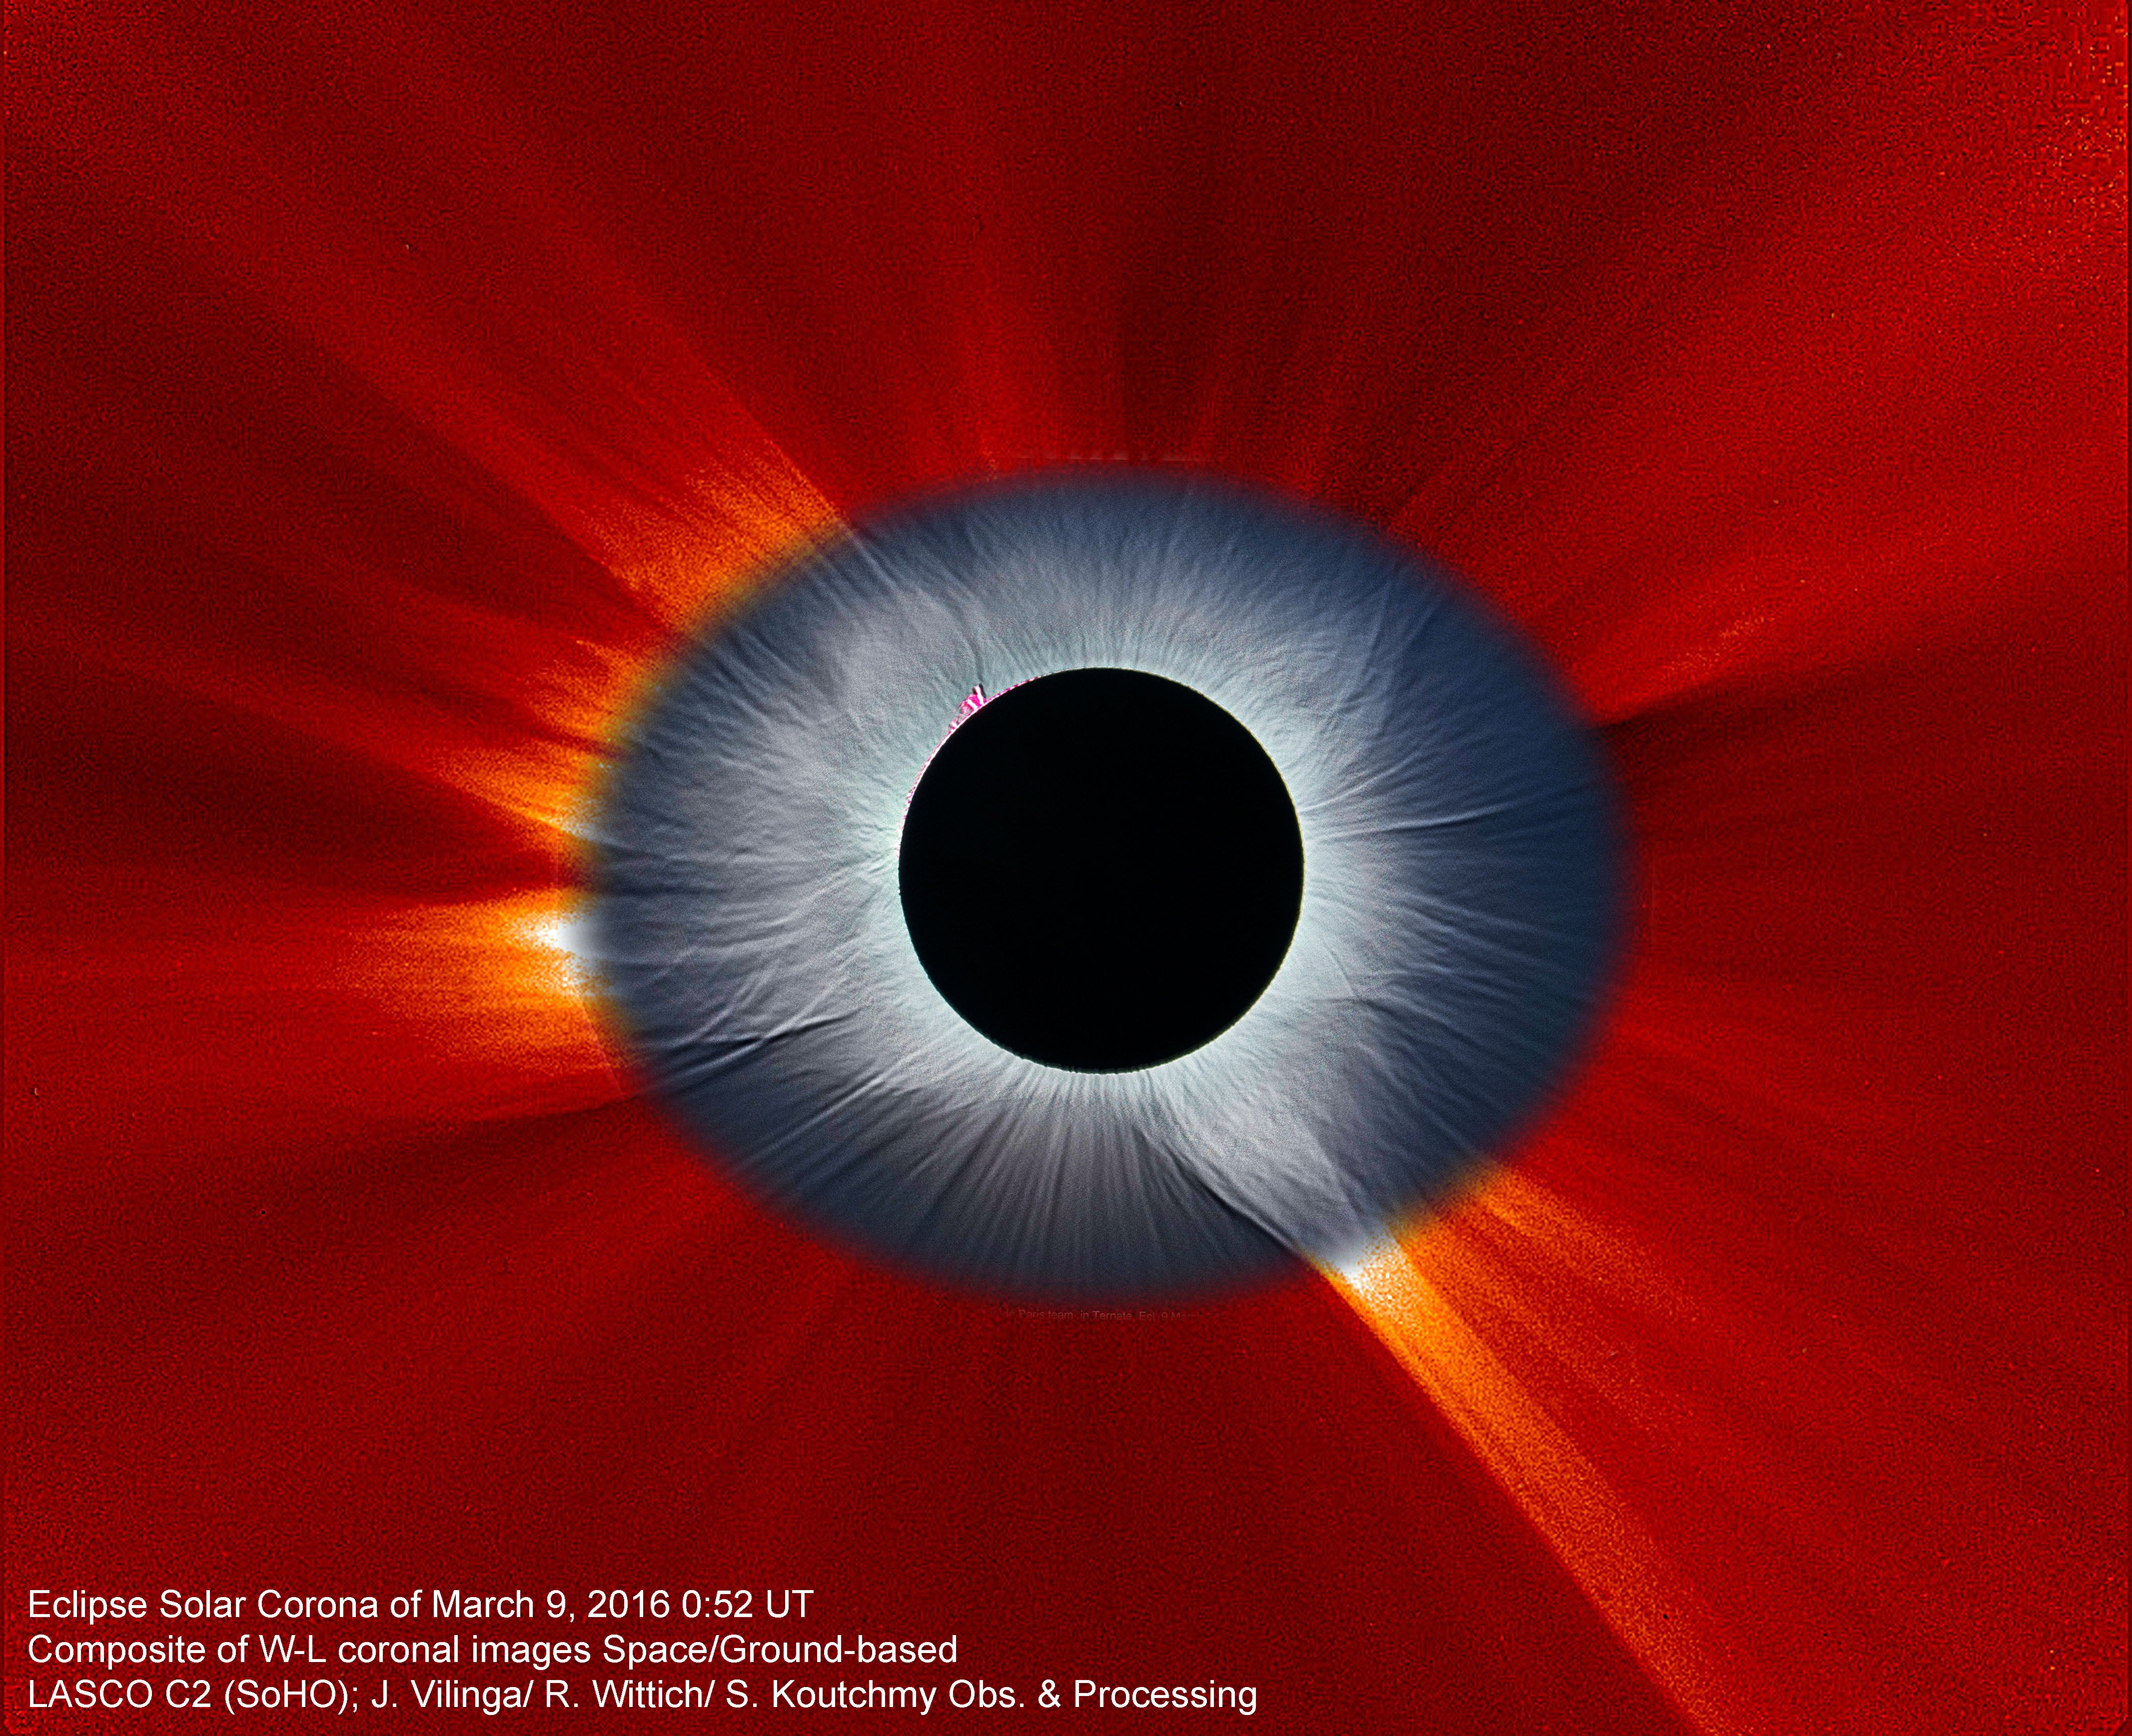 Stunning Solar Eclipse Image Looks Like the Eye of our Solar System